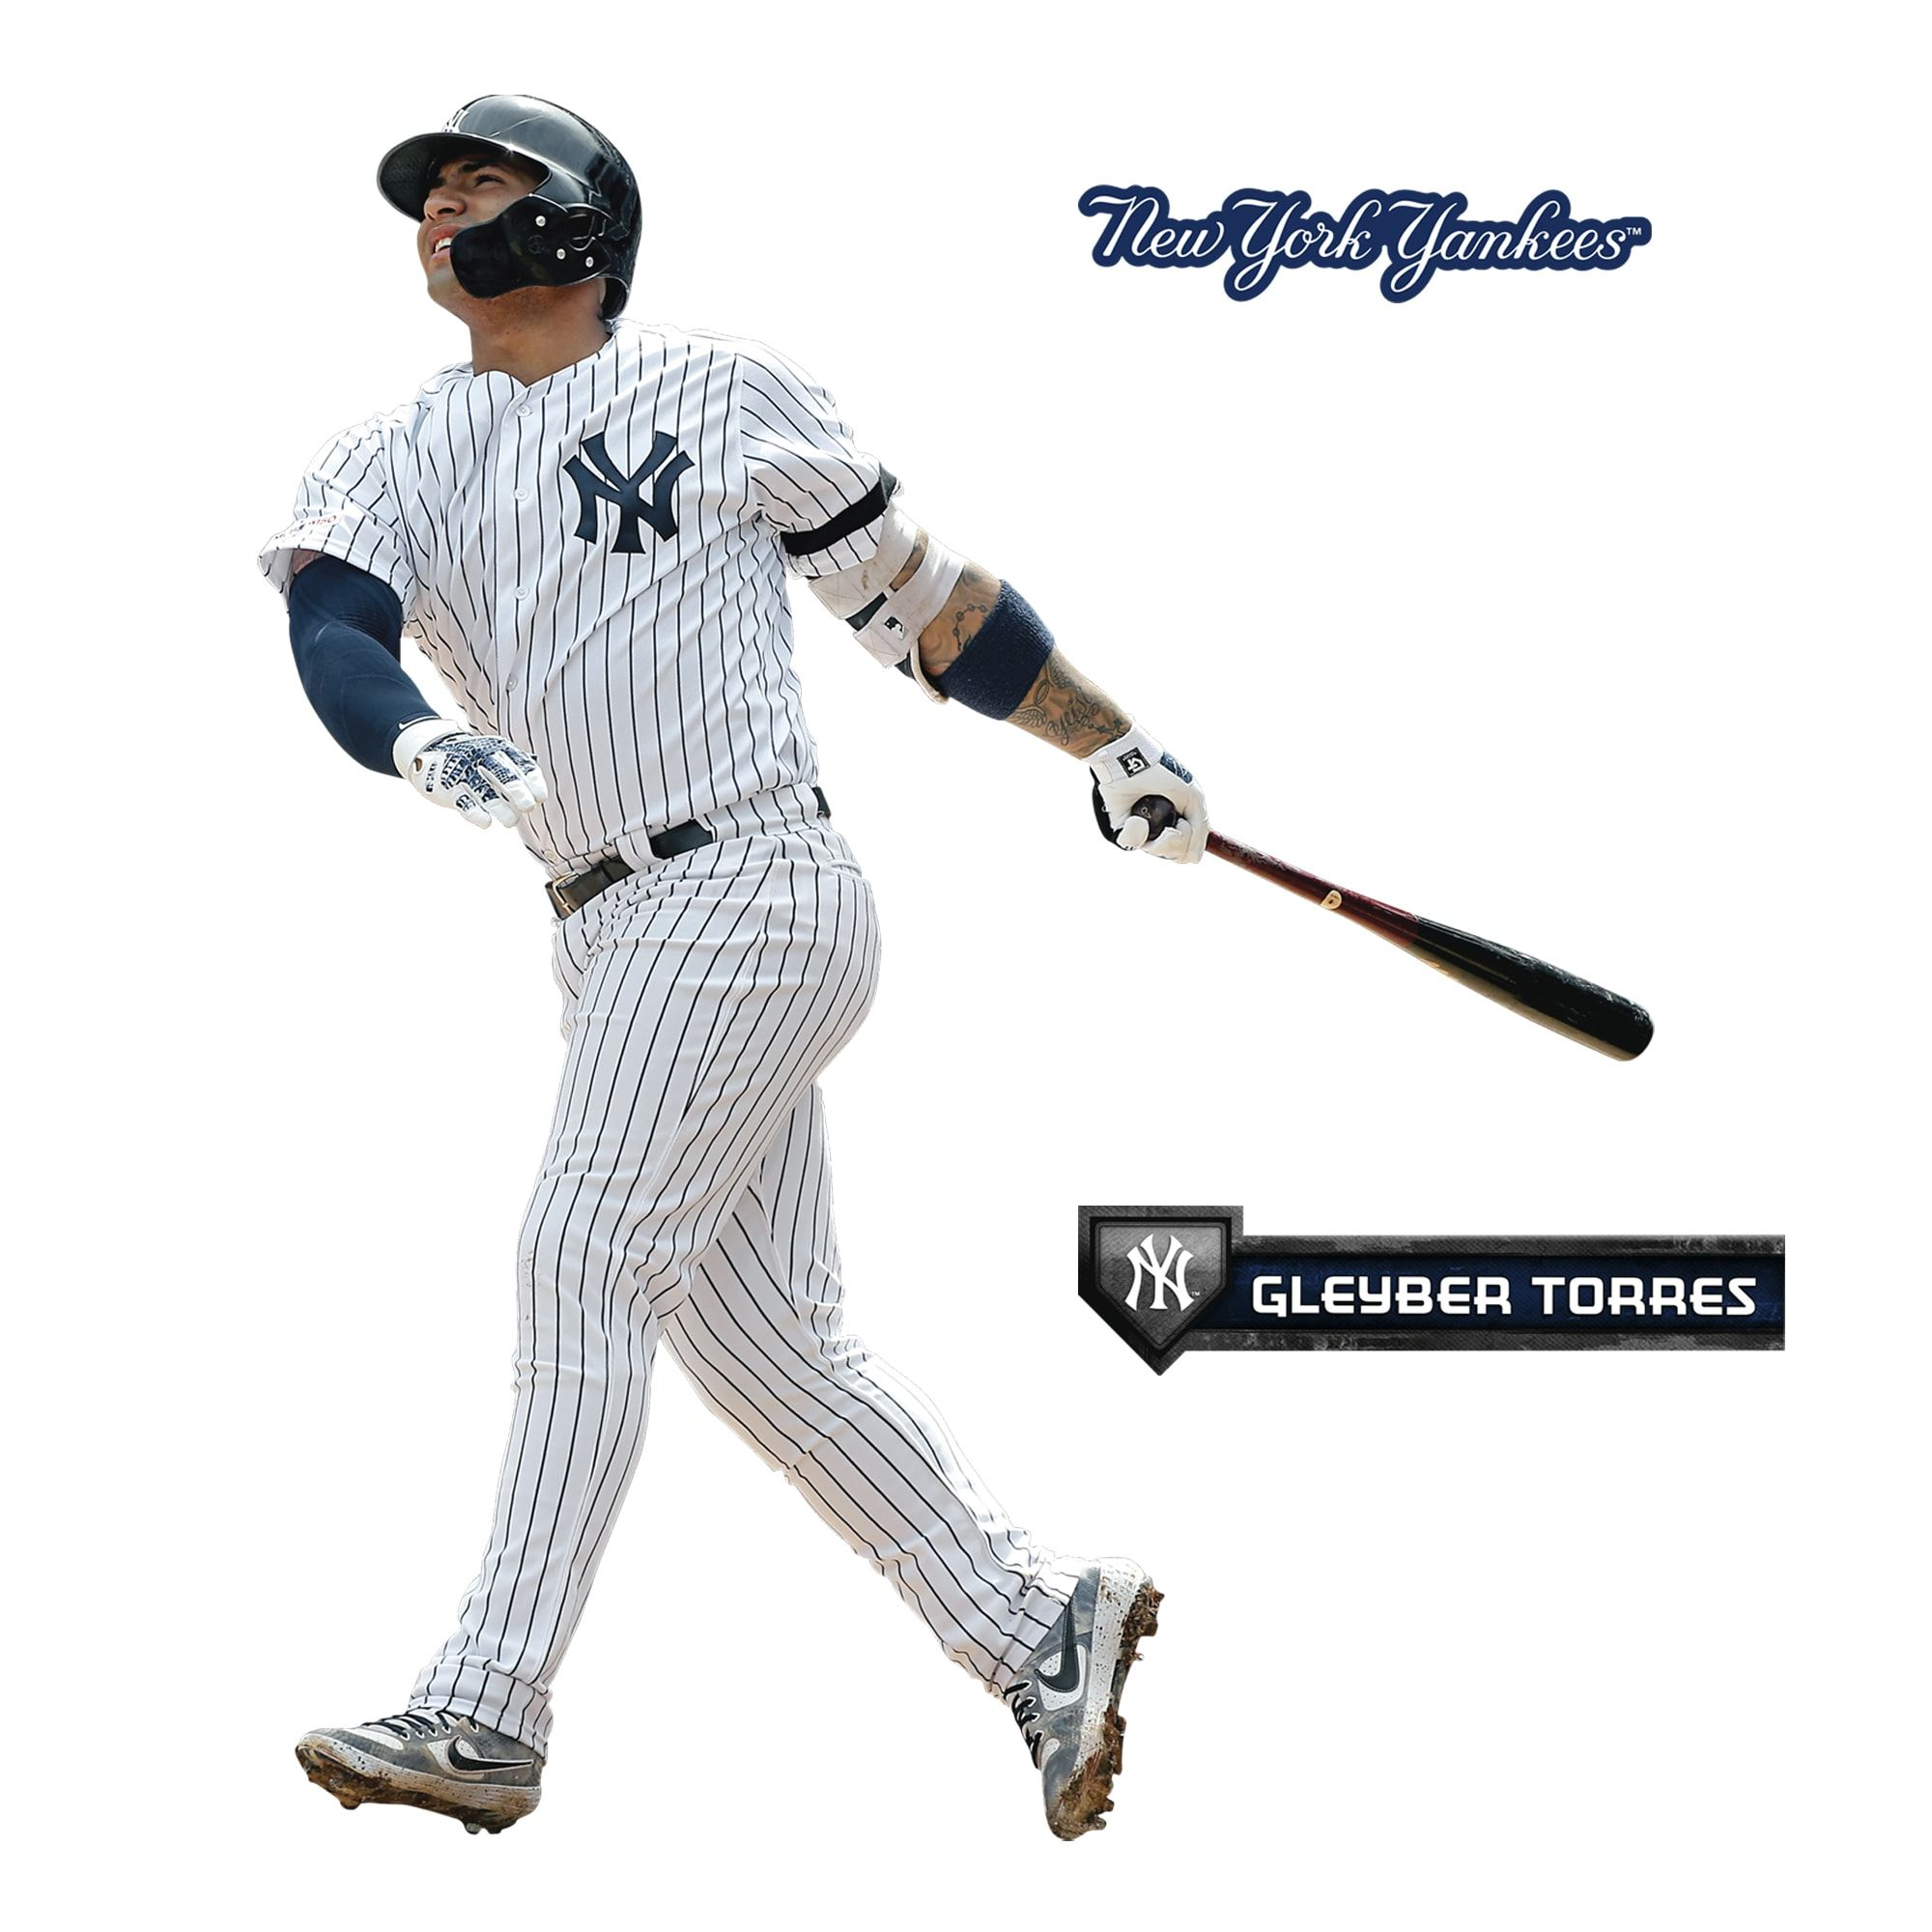 Gleyber Torres X Large Officially Licensed Mlb Removable Wall Decal In 2020 Gleyber Torres Removable Wall Decals Life Size Cutouts